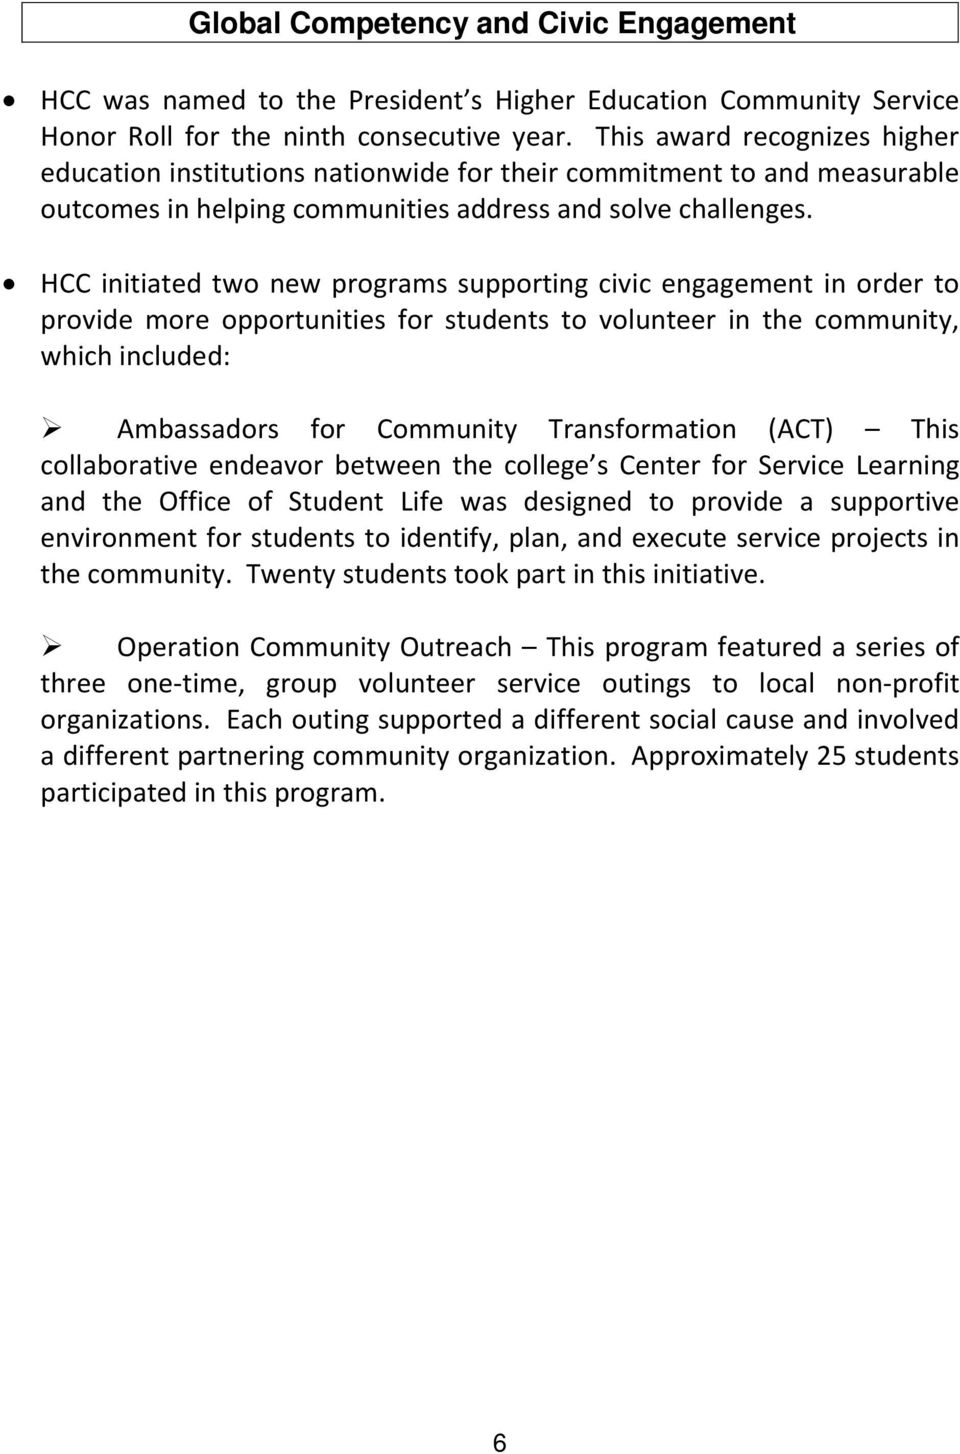 HCC initiated two new programs supporting civic engagement in order to provide more opportunities for students to volunteer in the community, which included: Ambassadors for Community Transformation